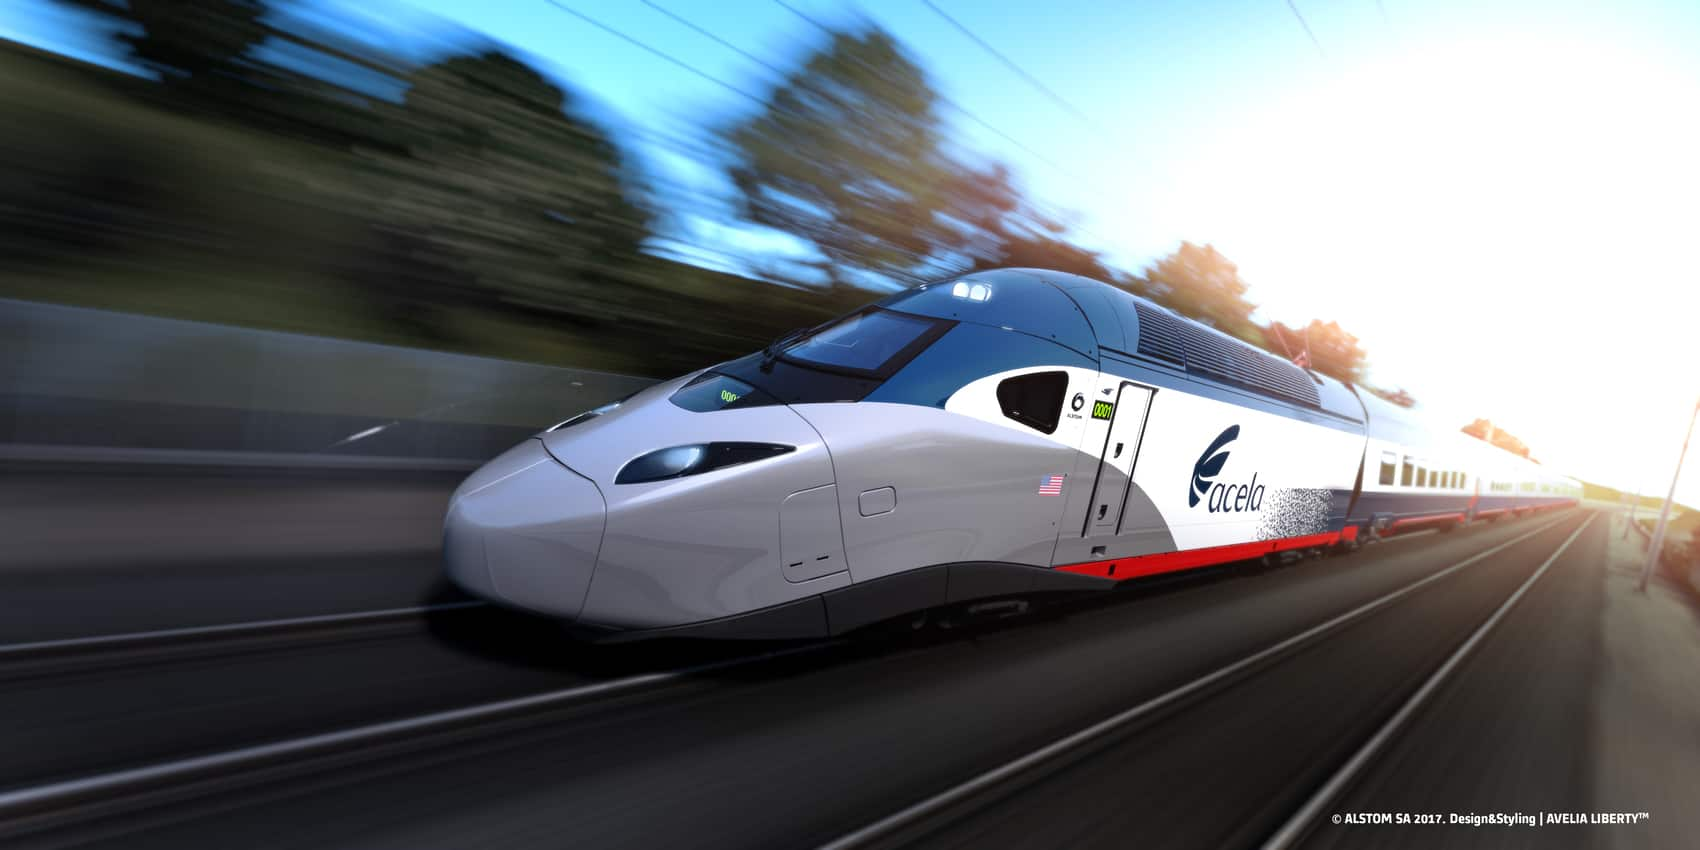 The sleek locomotives of the 165-miles-per-hour trainsets will resemble those found in Japan.